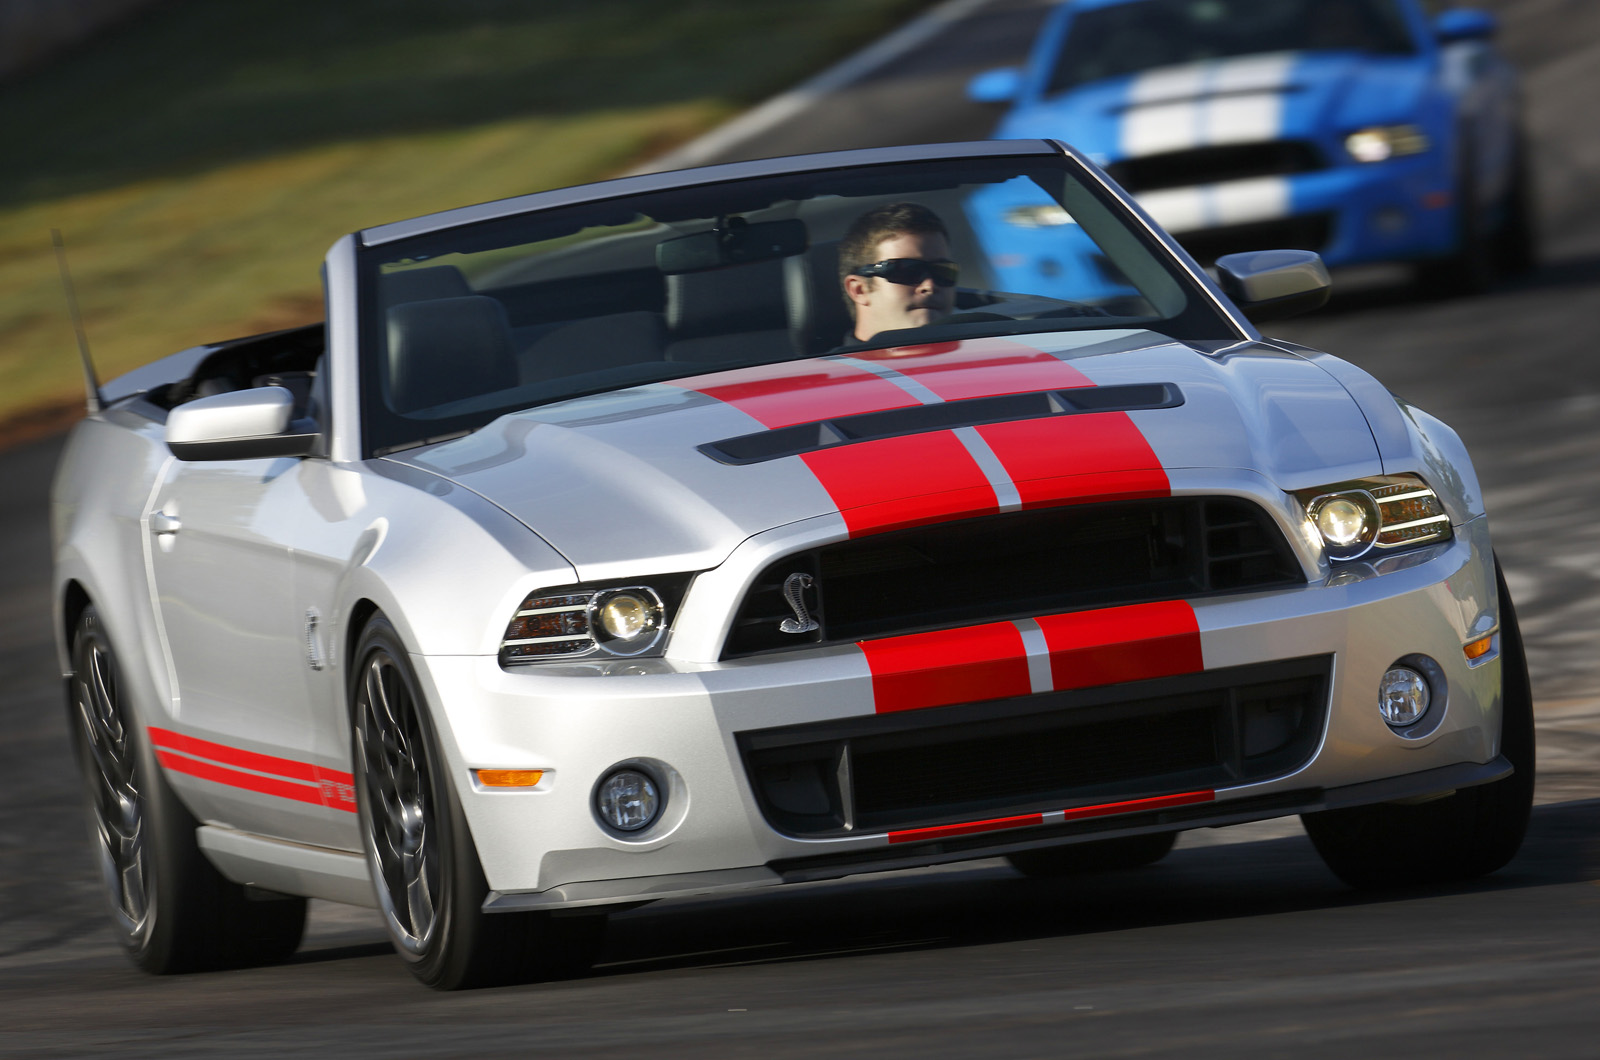 Ford Shelby Gt500 Convertible Review Autocar Gt 500